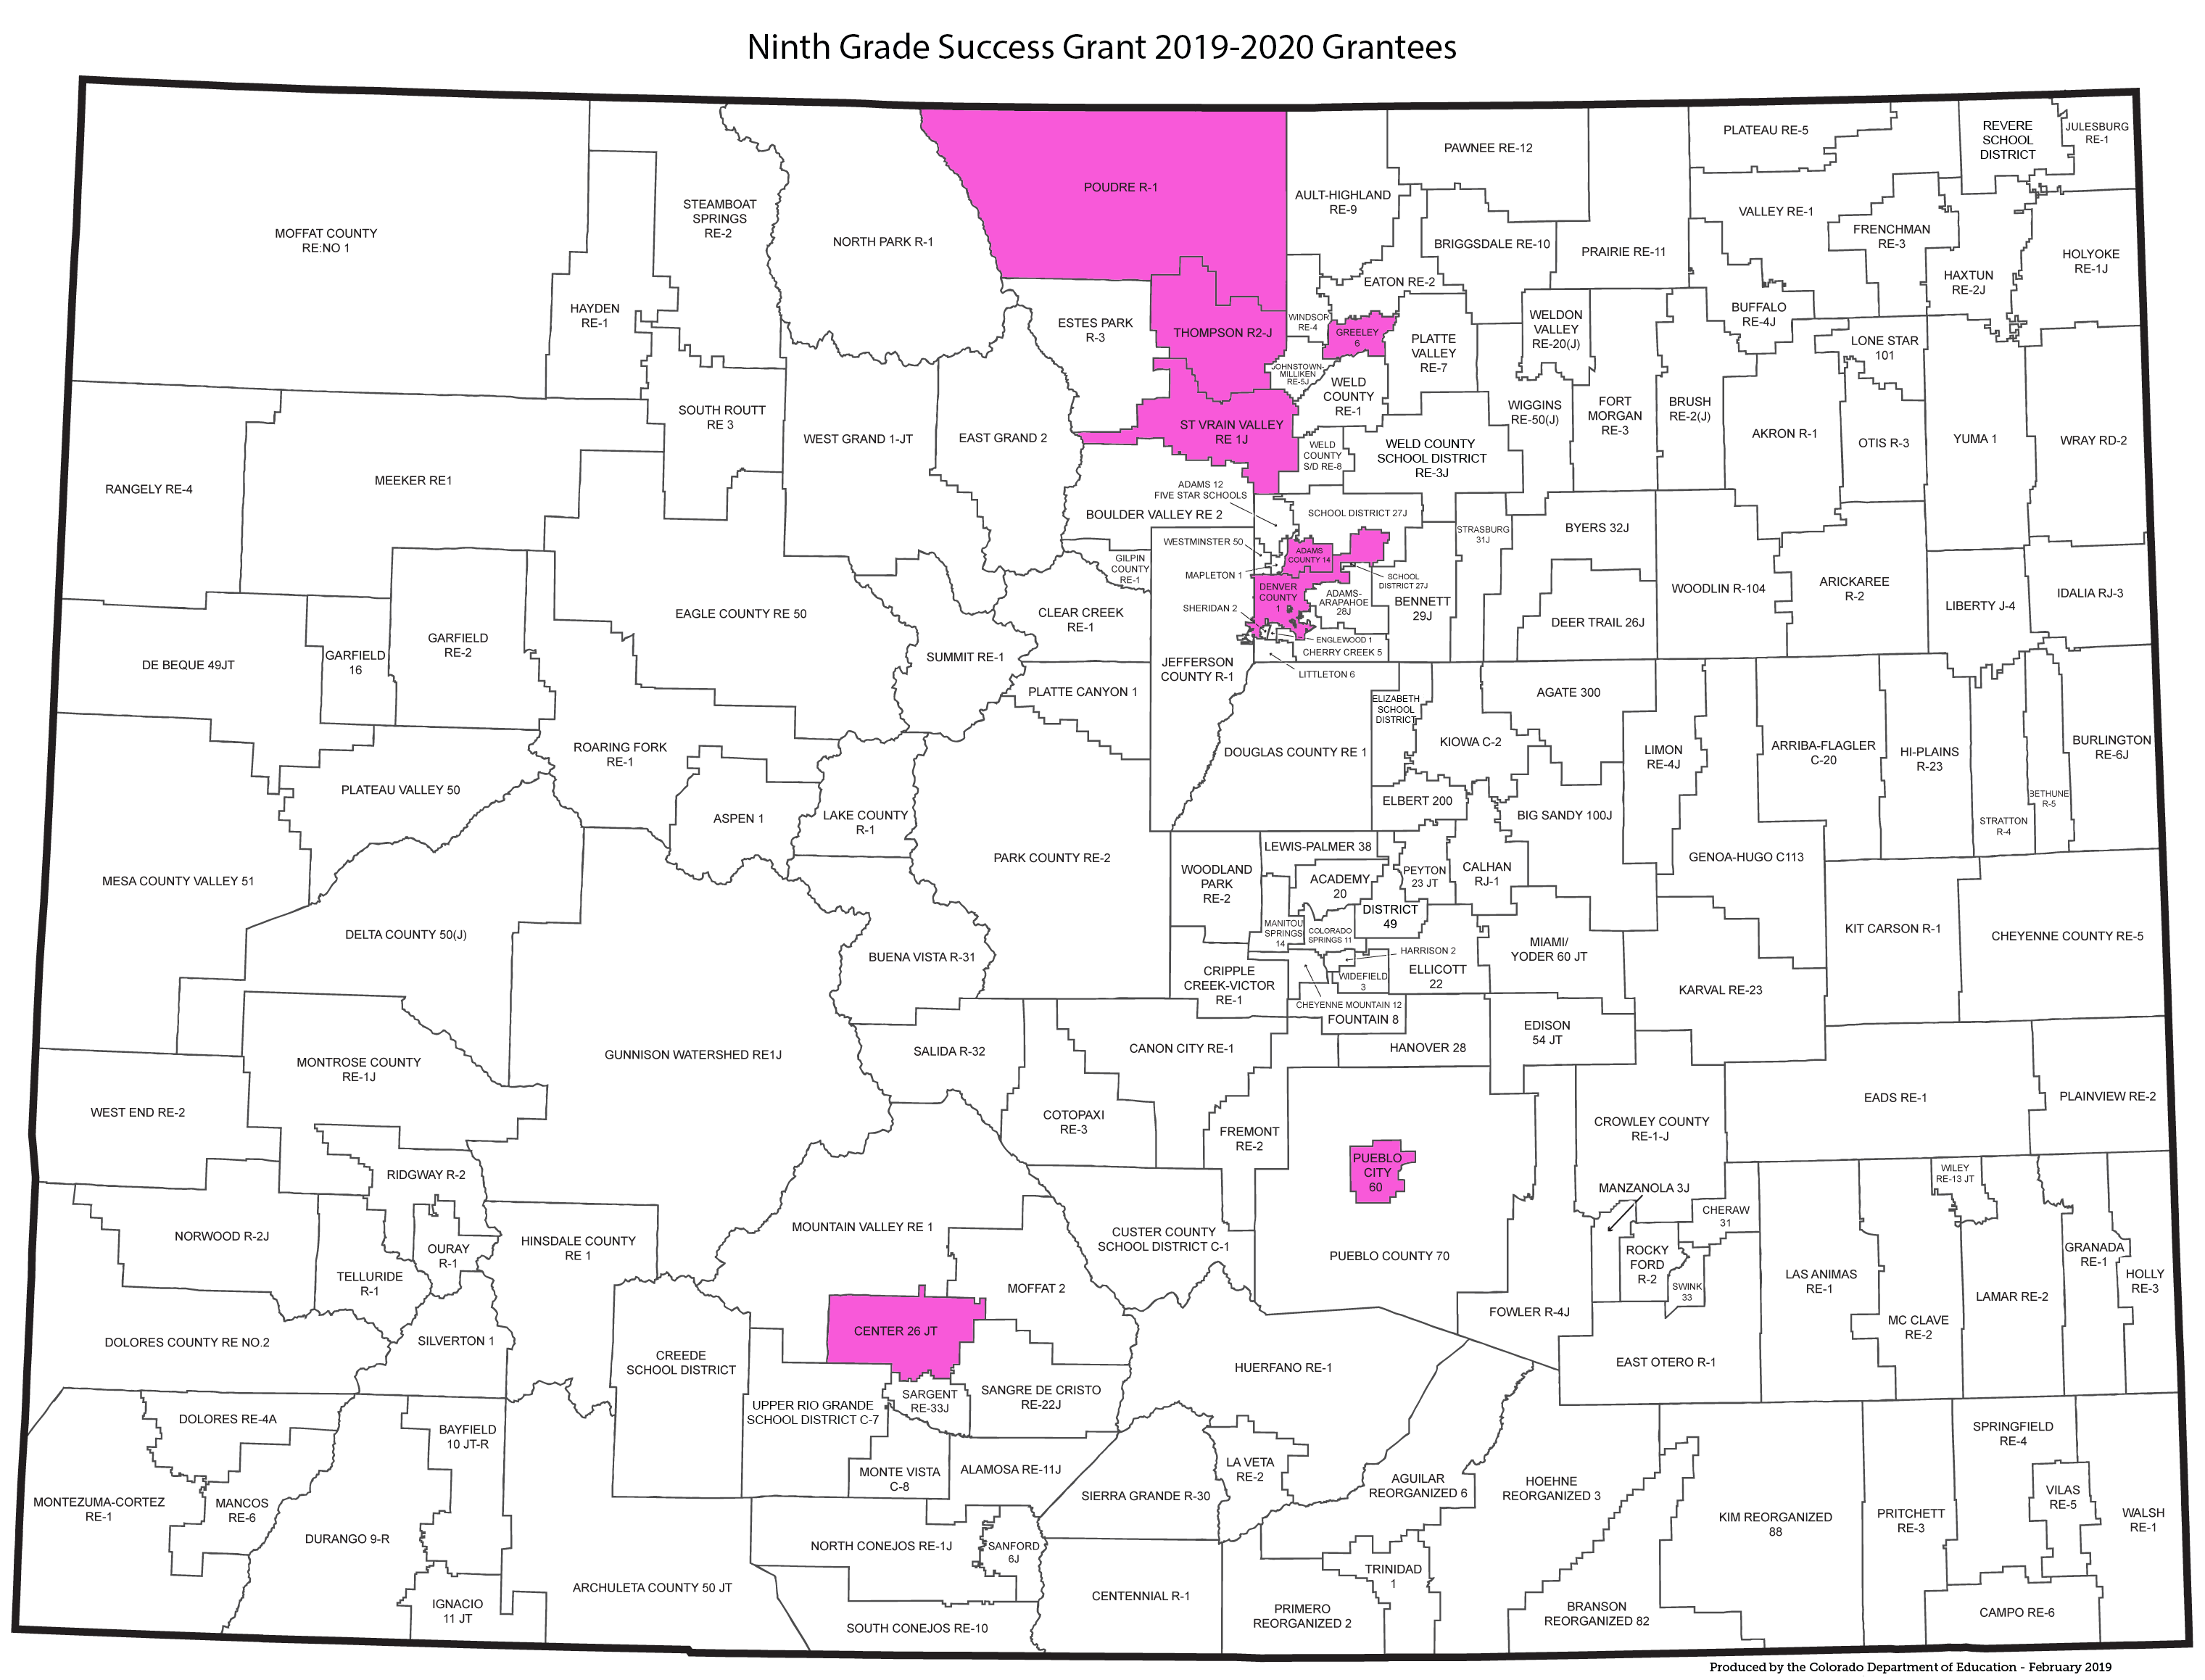 Map with Adams 14, St Vrain, Denver, Harrison, Poudre, Thompson, Pueblo 60, Center, and Greeley 6